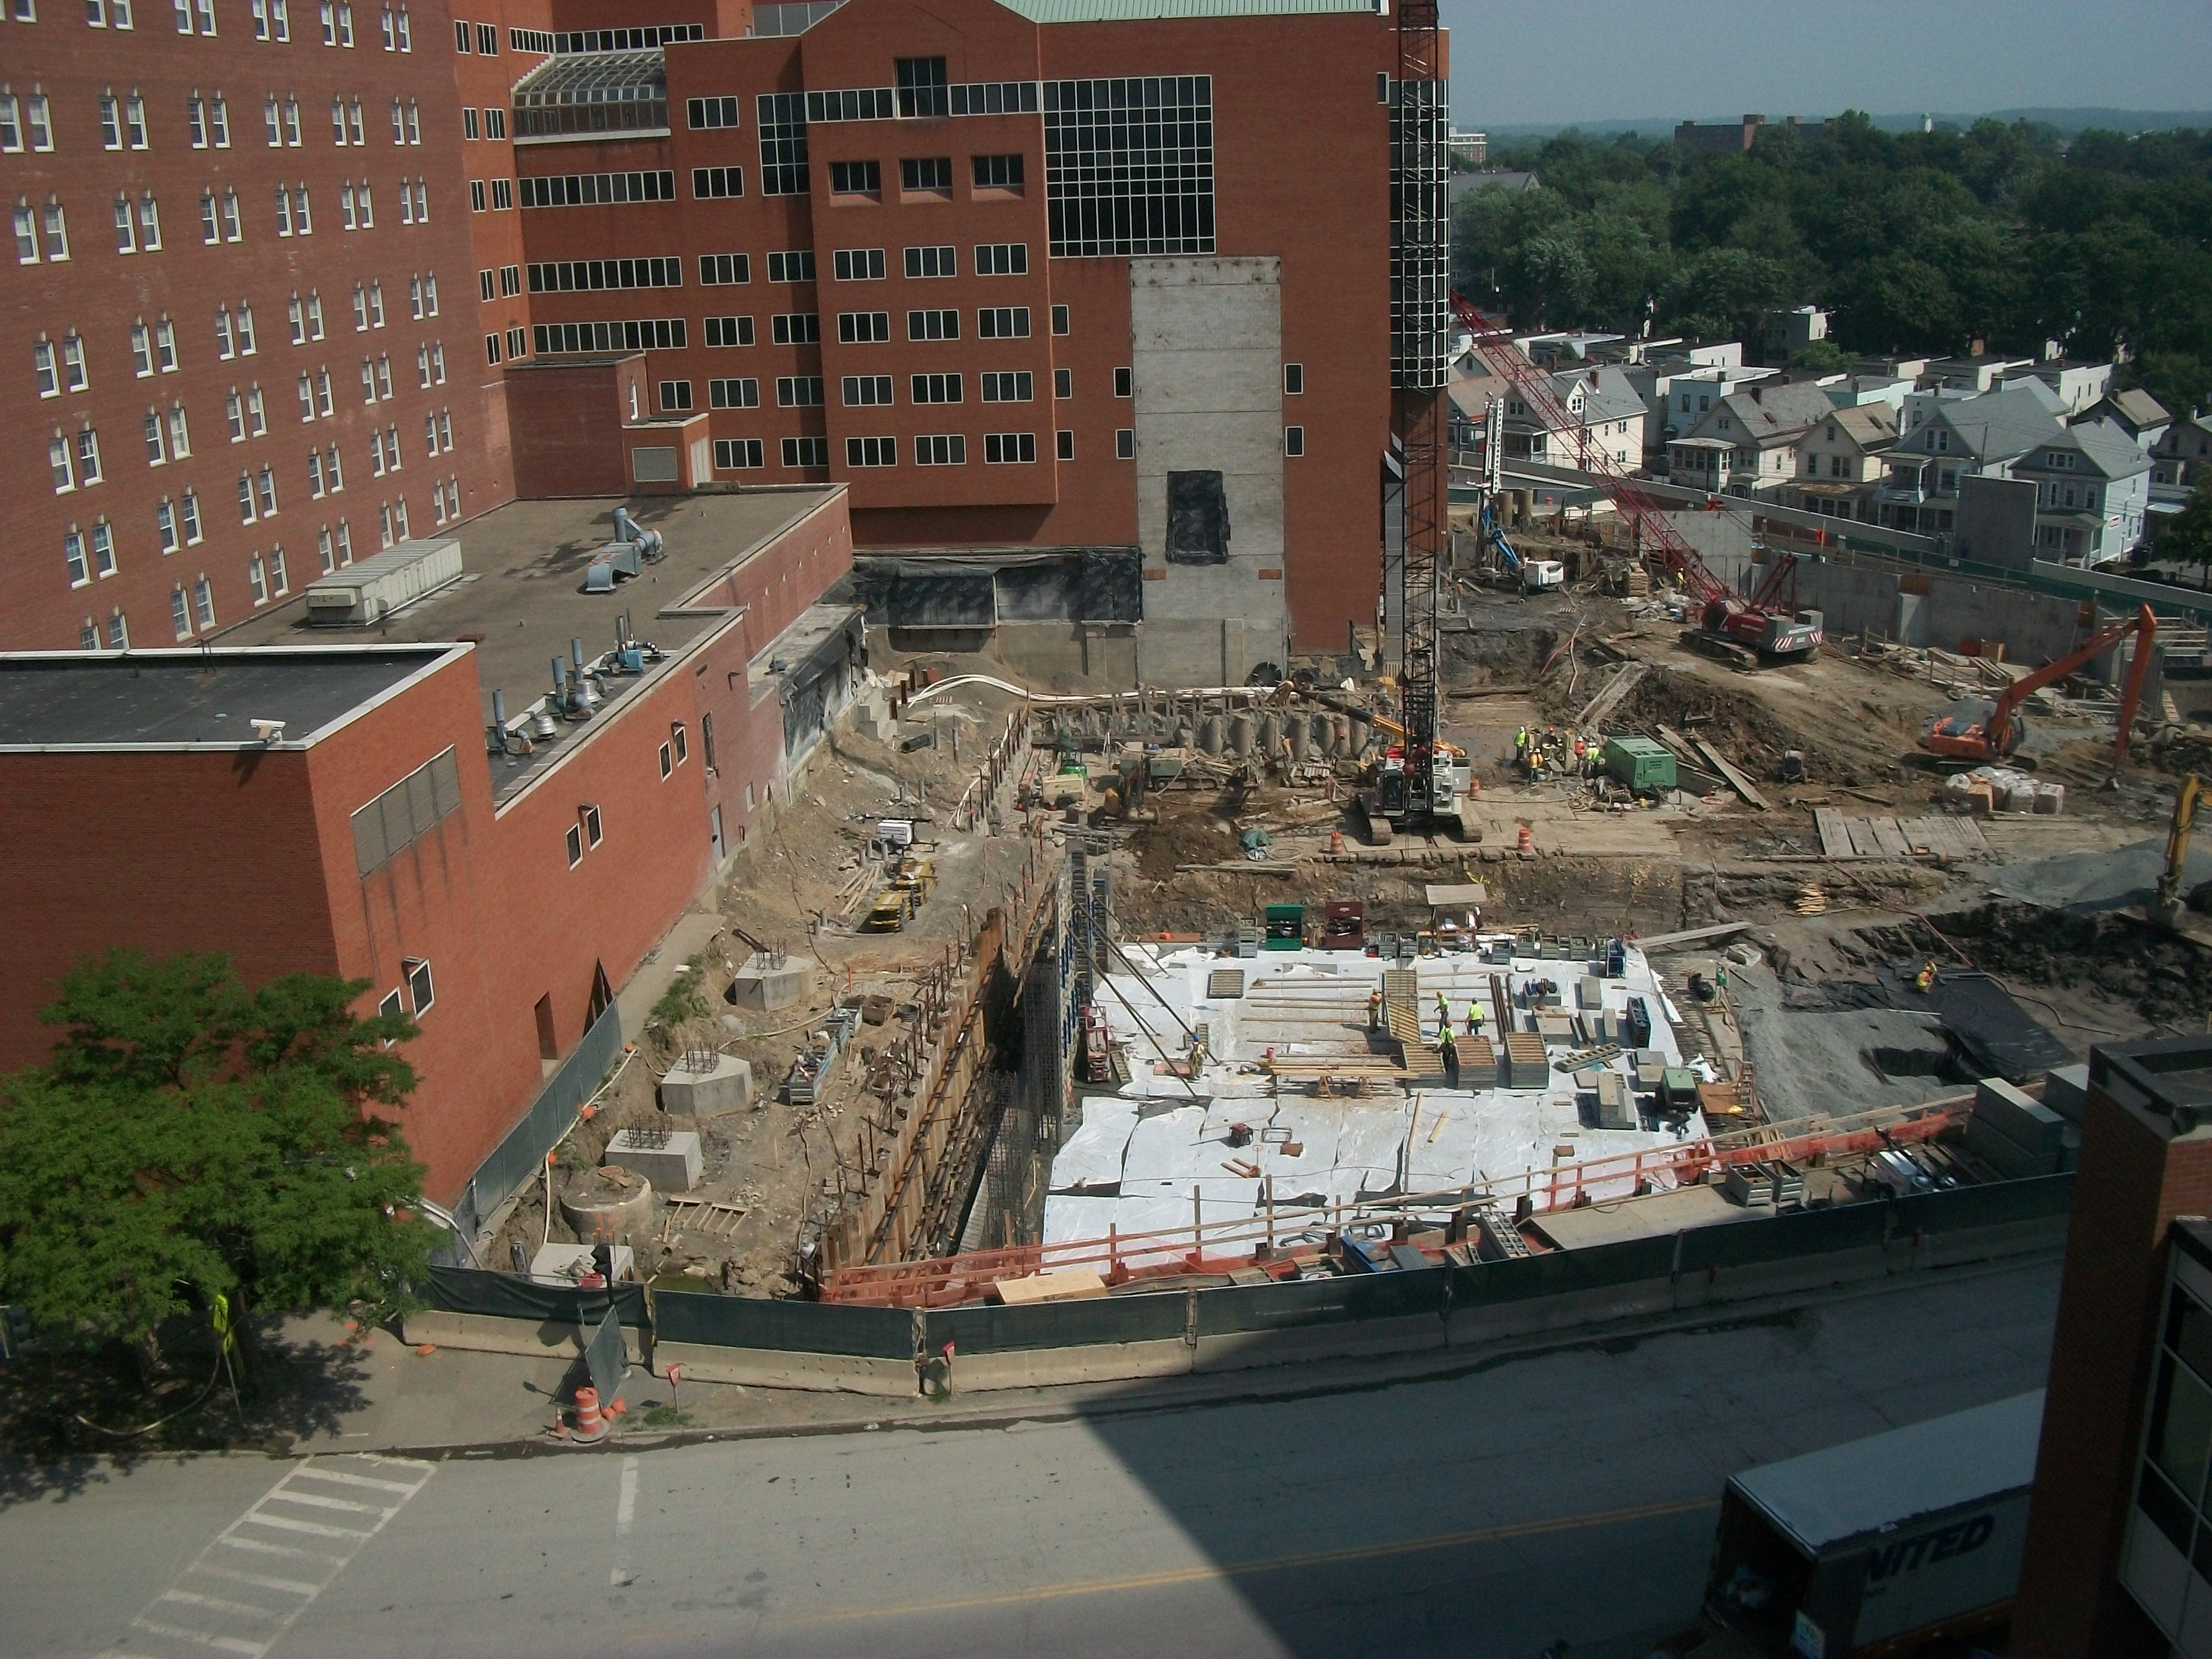 John P. Stopen Albany Medical Center Healthcare Project expansion construction